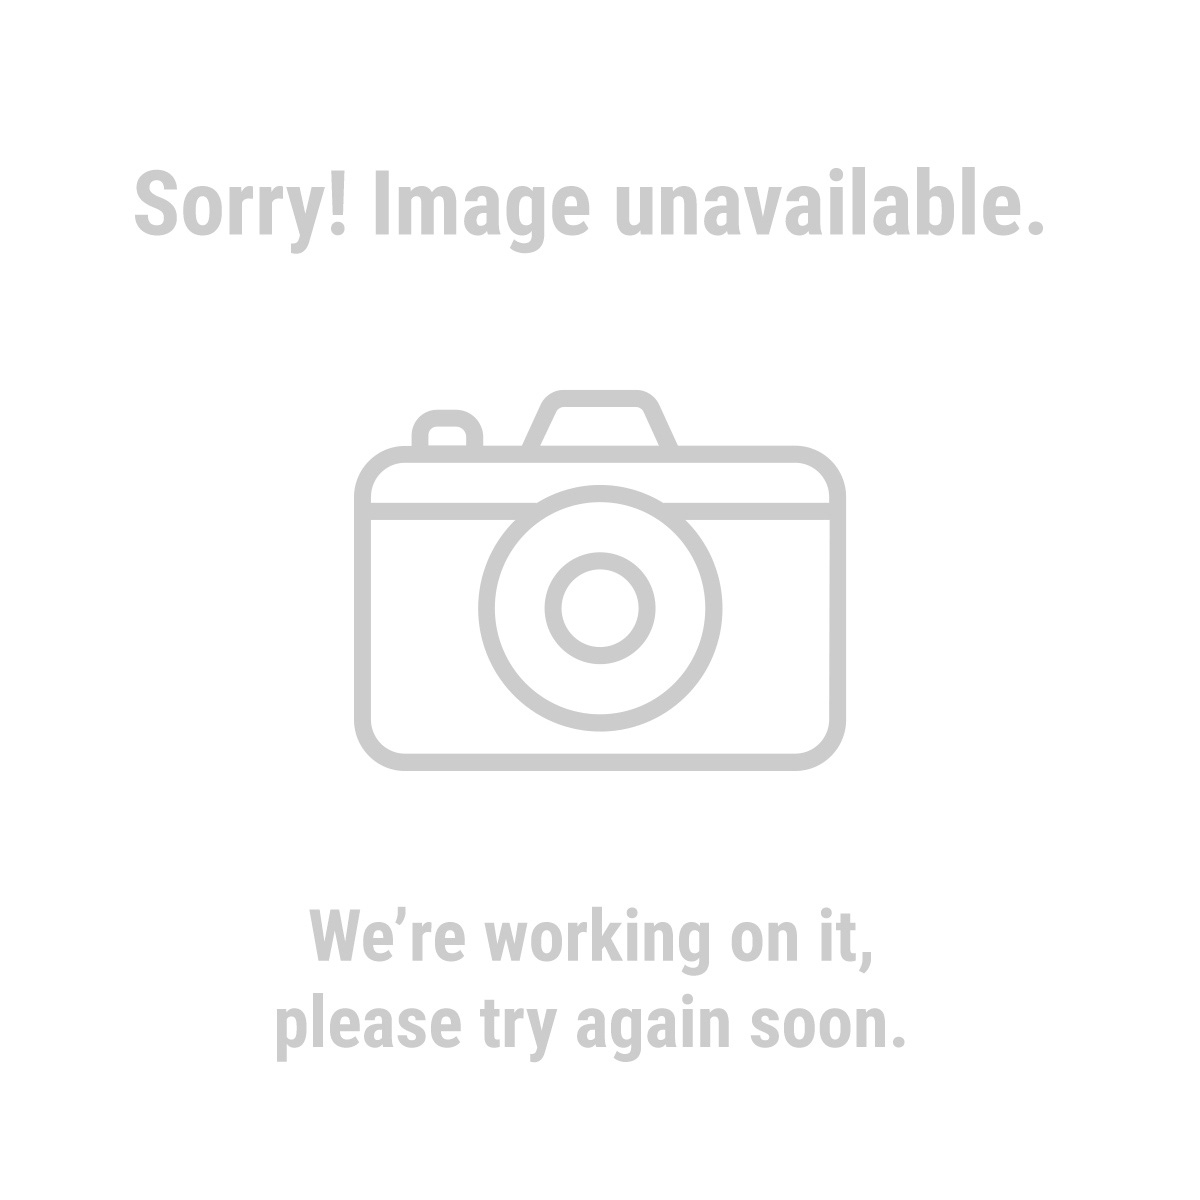 Lifetime Carbide® 90311 Pack of 6 Coarse Grade Aluminum Oxide Sanding Sponges with Beveled Edge